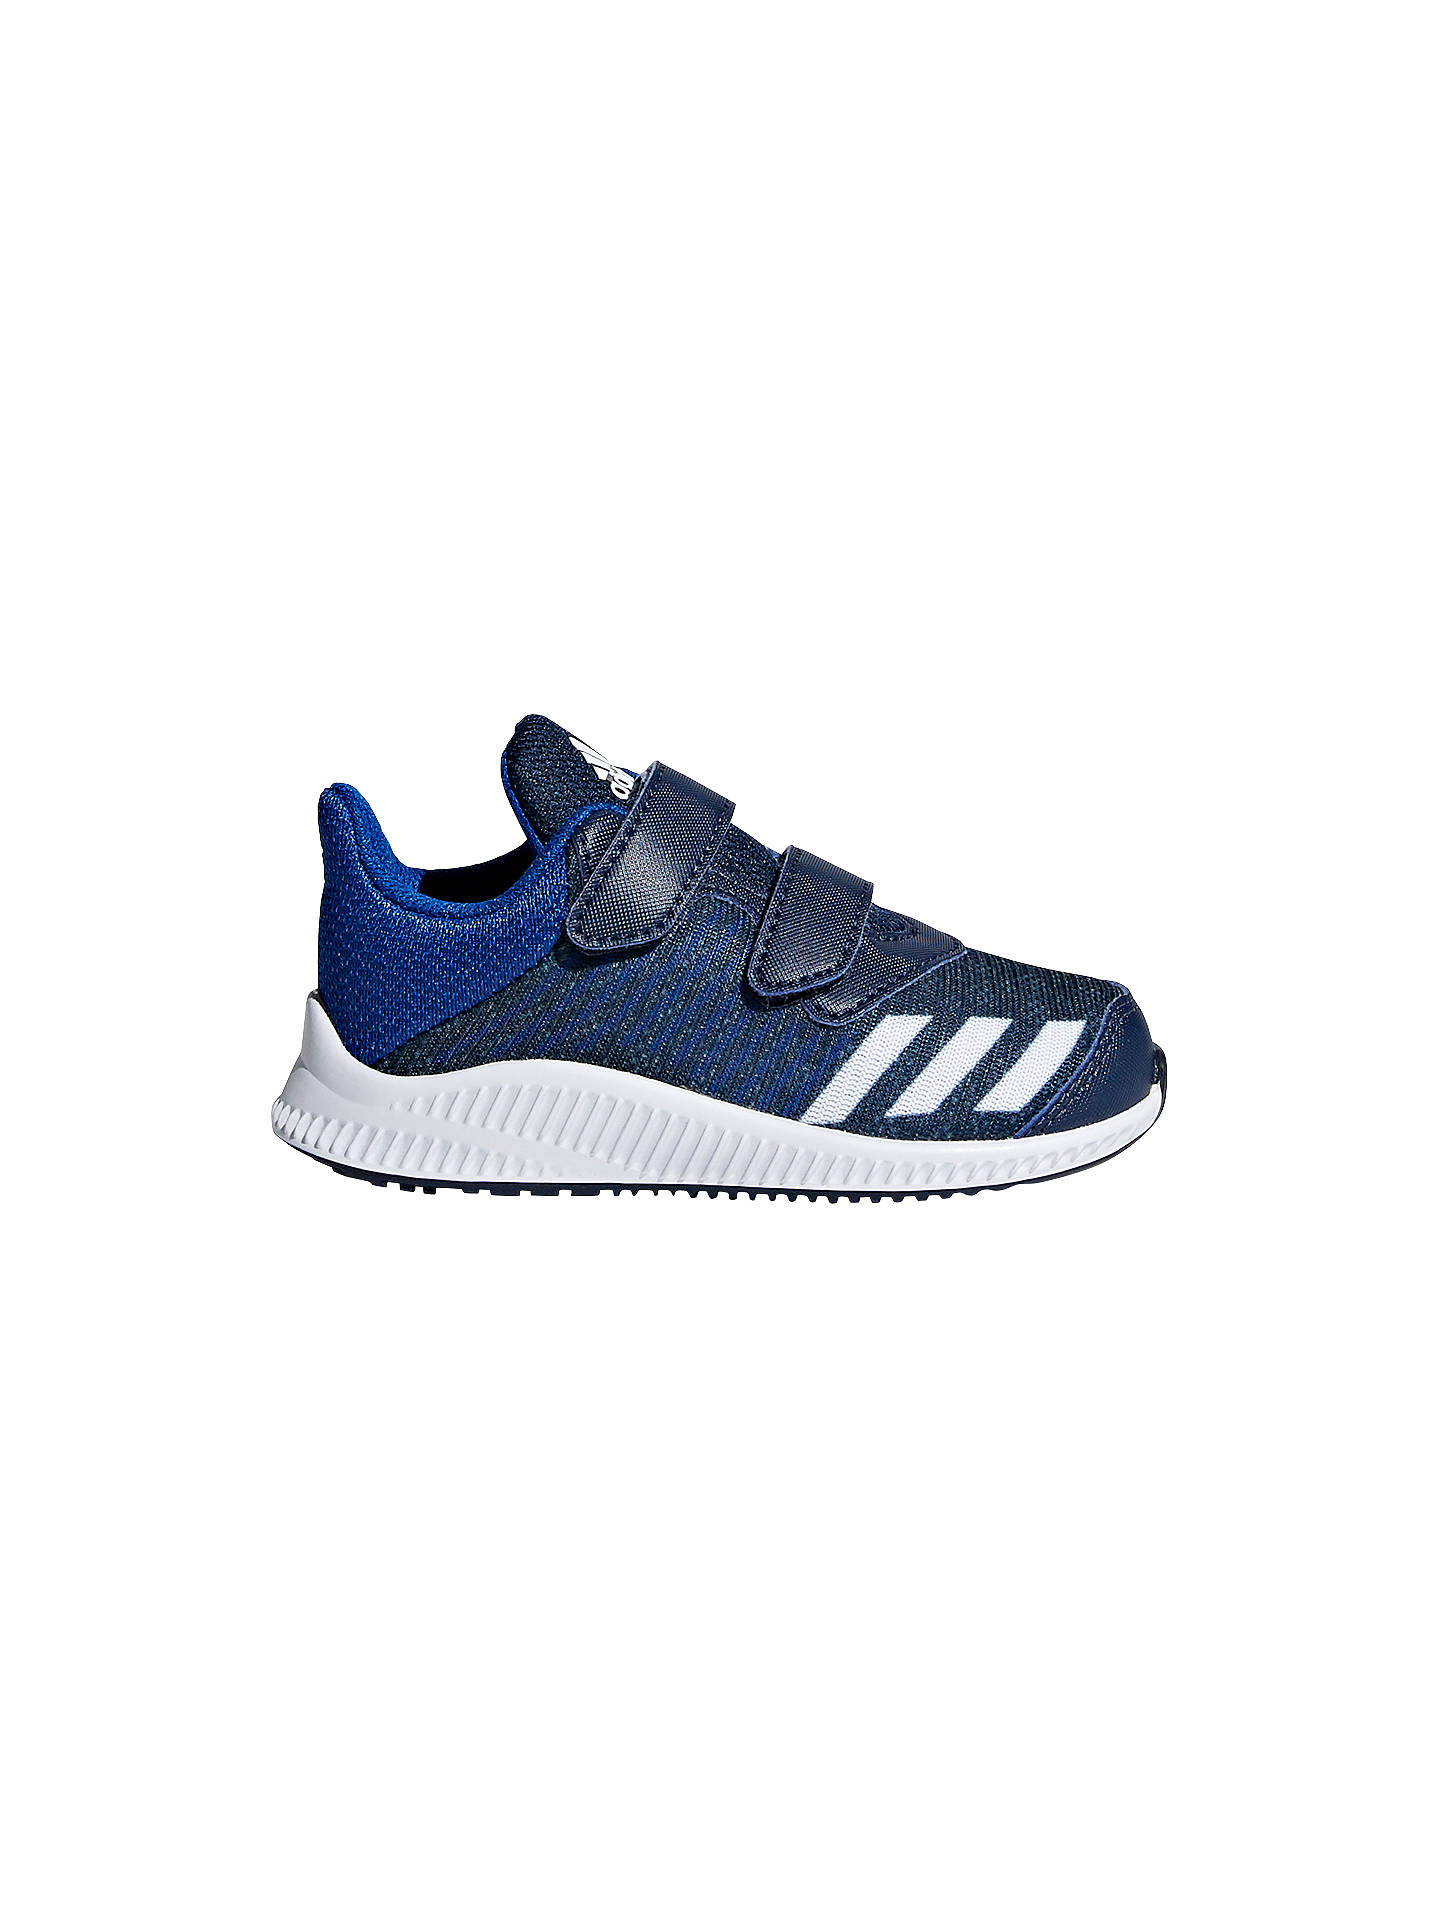 Adidas Fortarun Infant Baby Boys Girls Trainers Size Uk 4 5 7 7.5 8 8.5 Infant Clothing, Shoes & Accessories